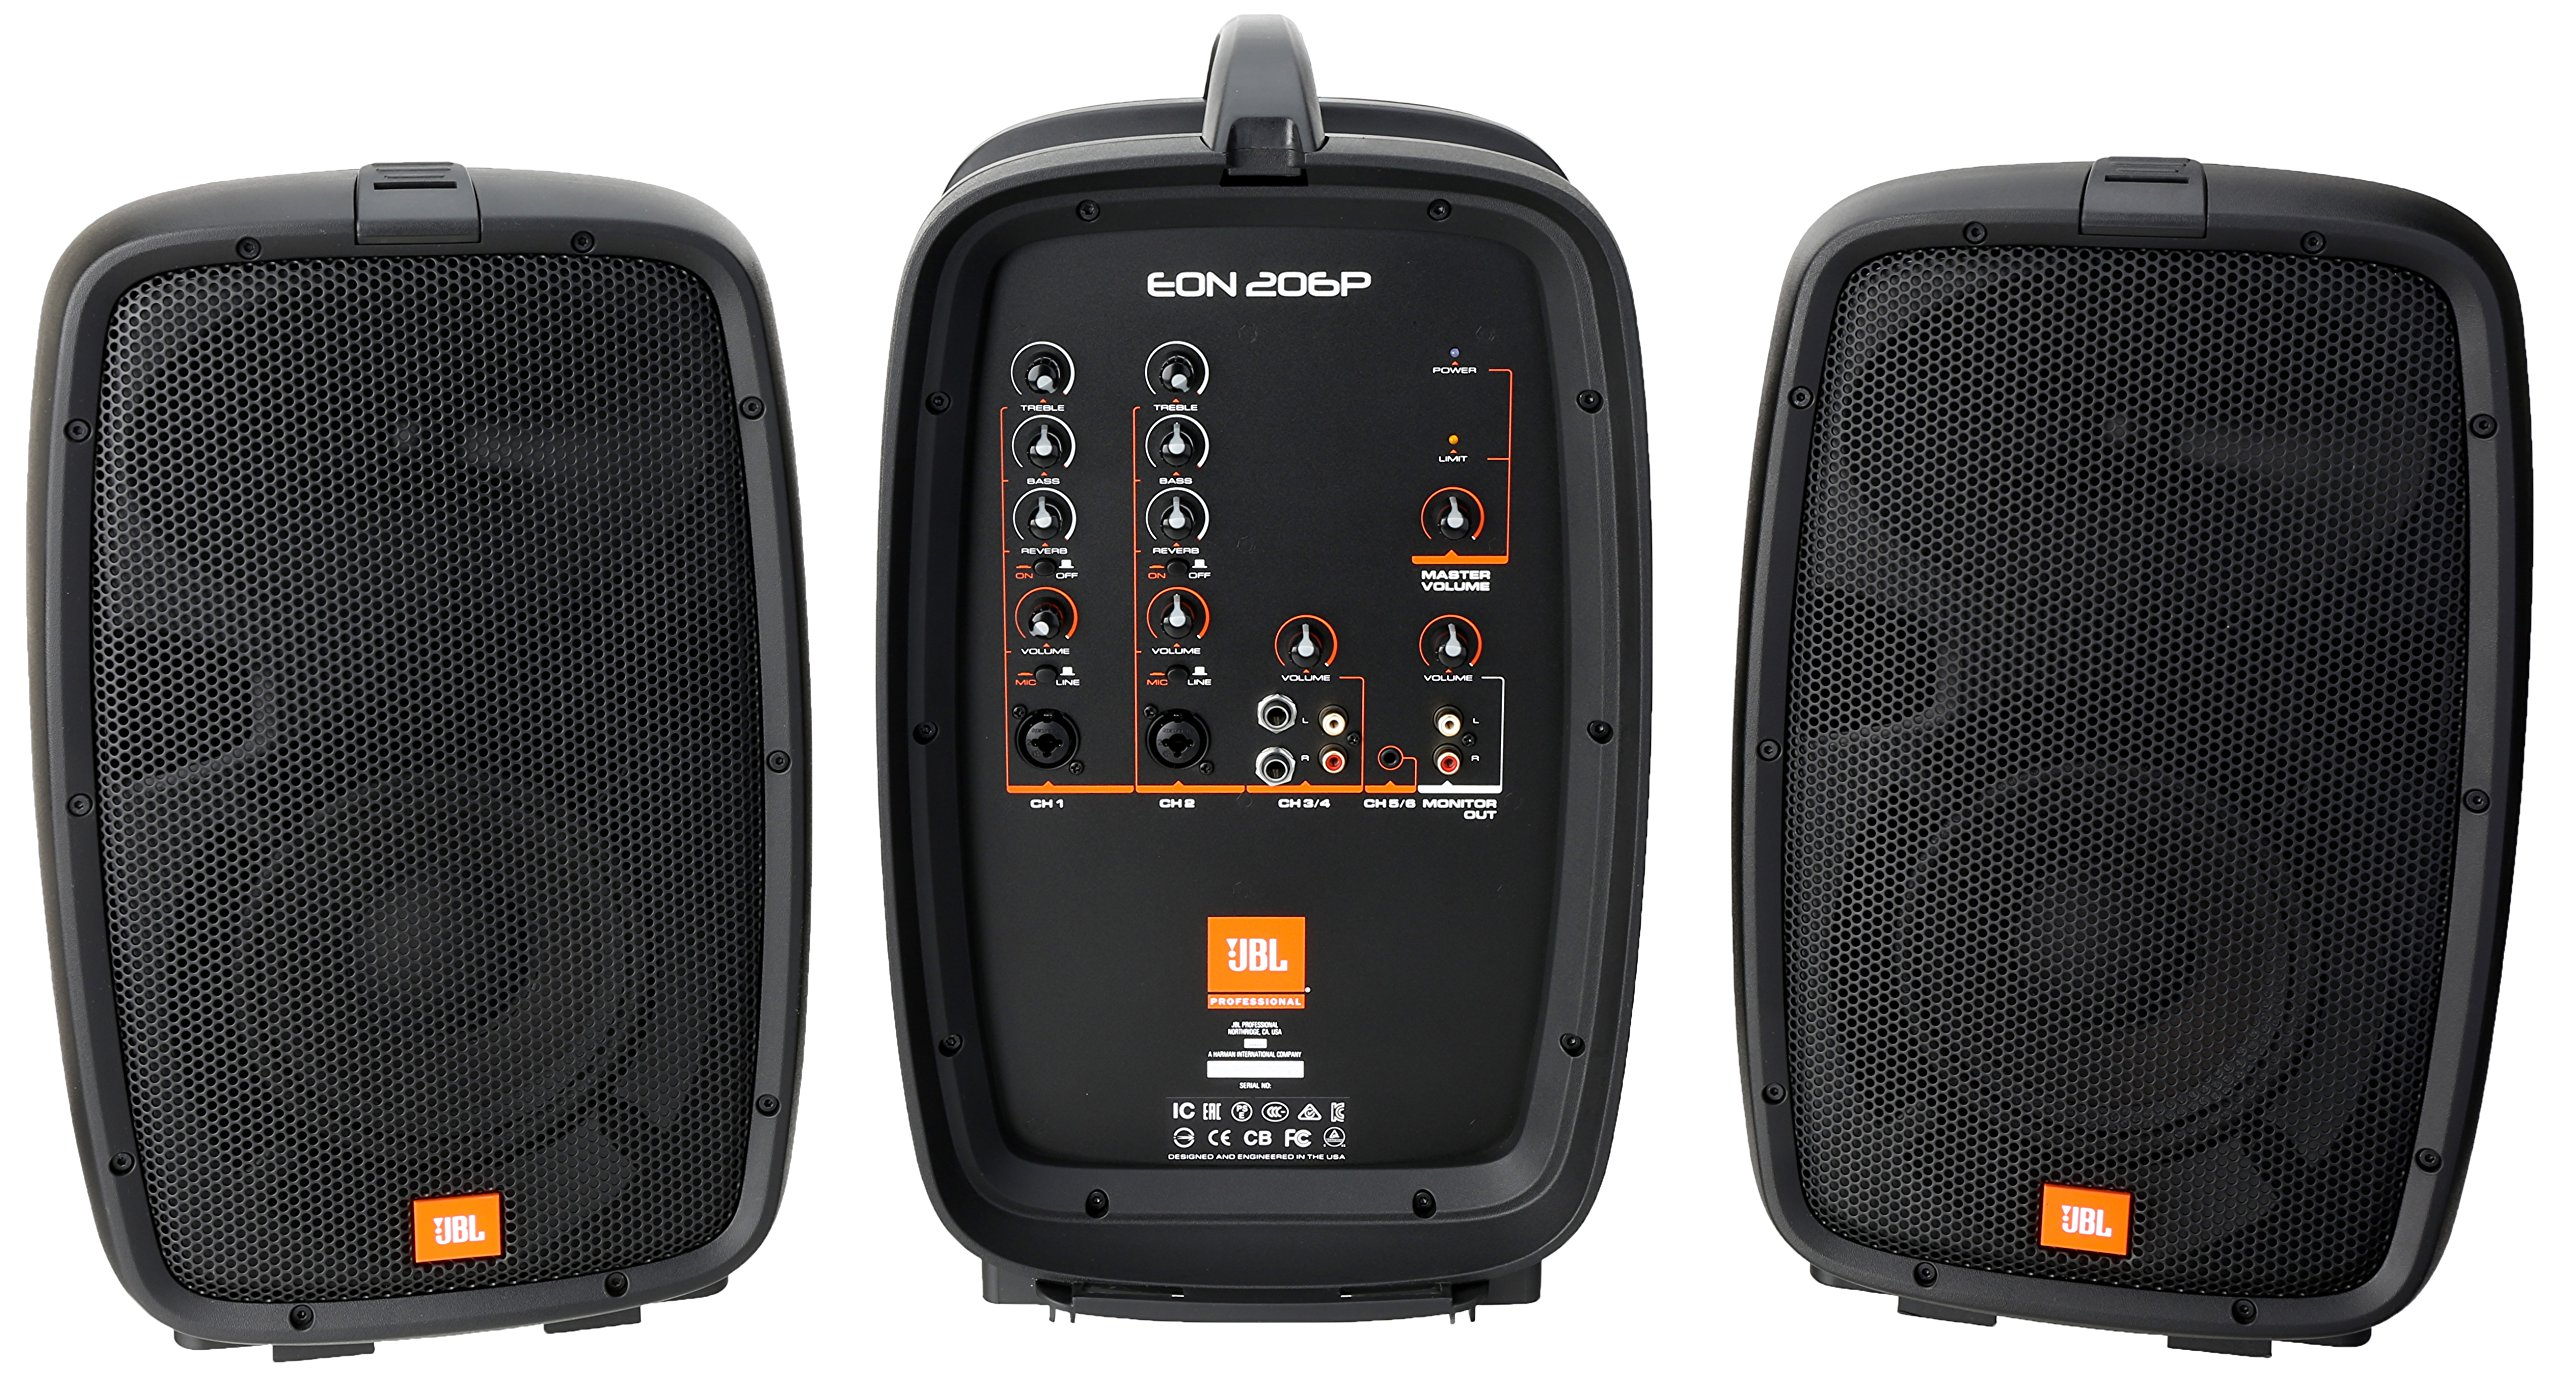 JBL EON206P Portable All-in-One 2-way PA System with 6-Channel Mixer by JBL